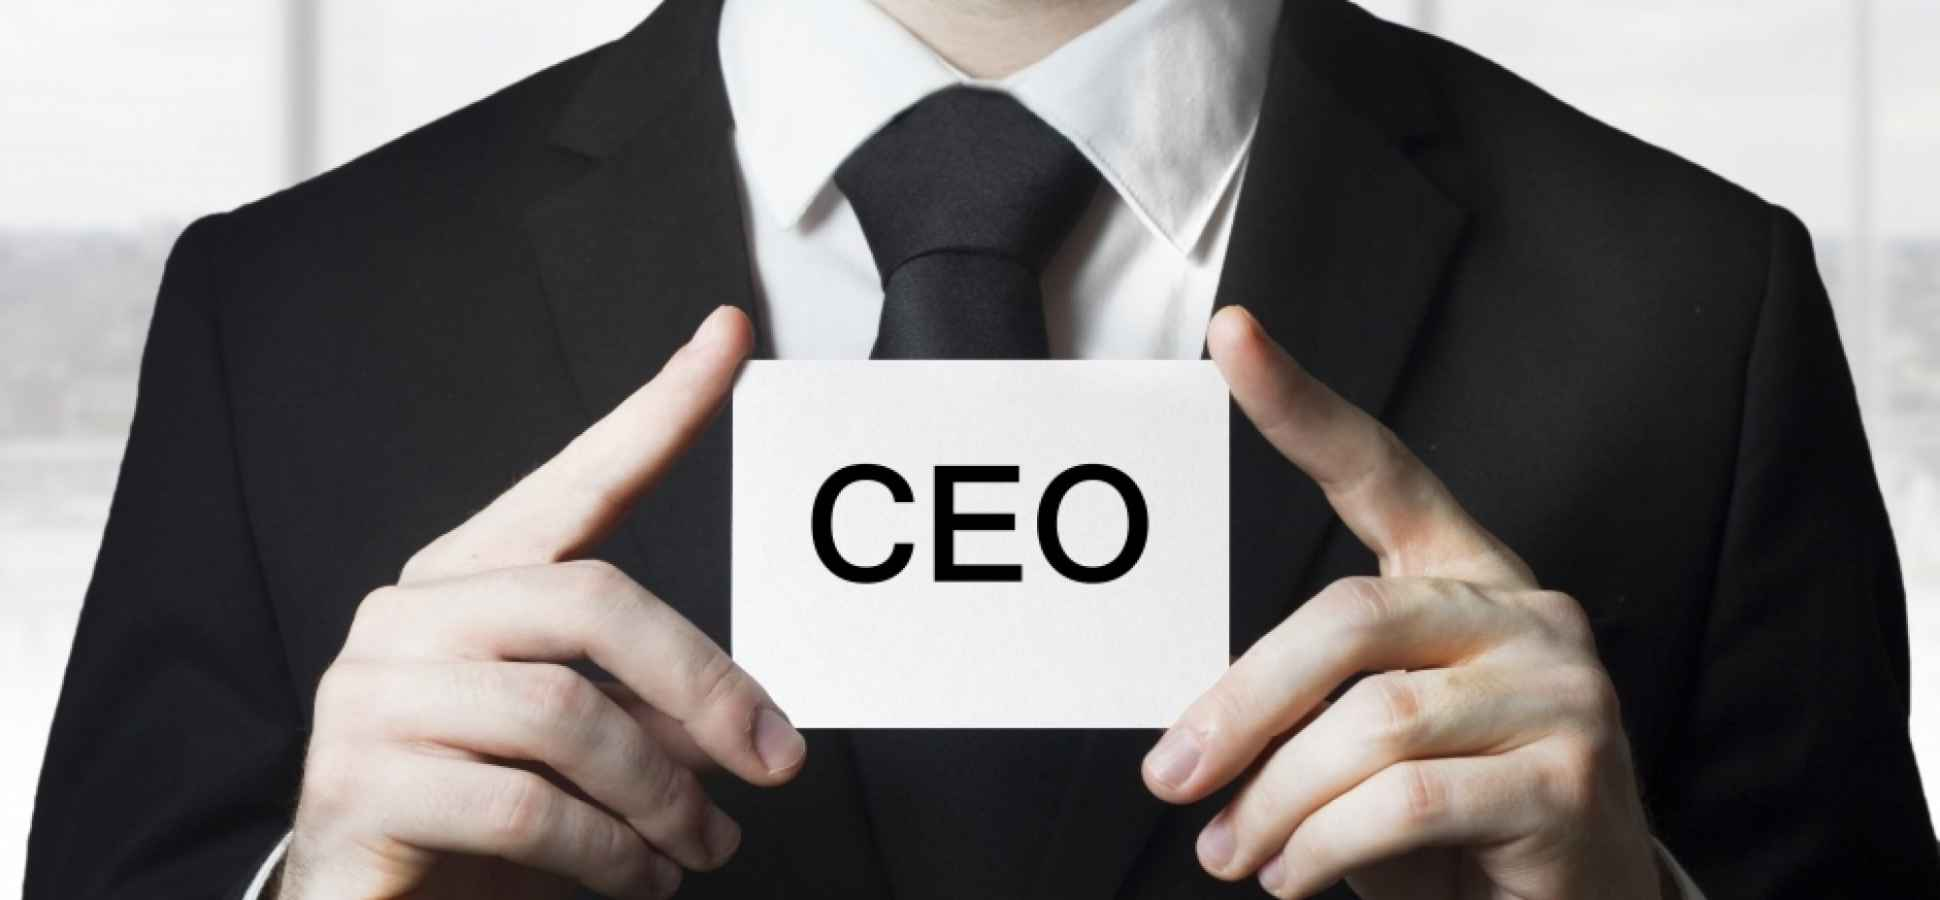 5 Things Every CEO Must Know to Start a Business